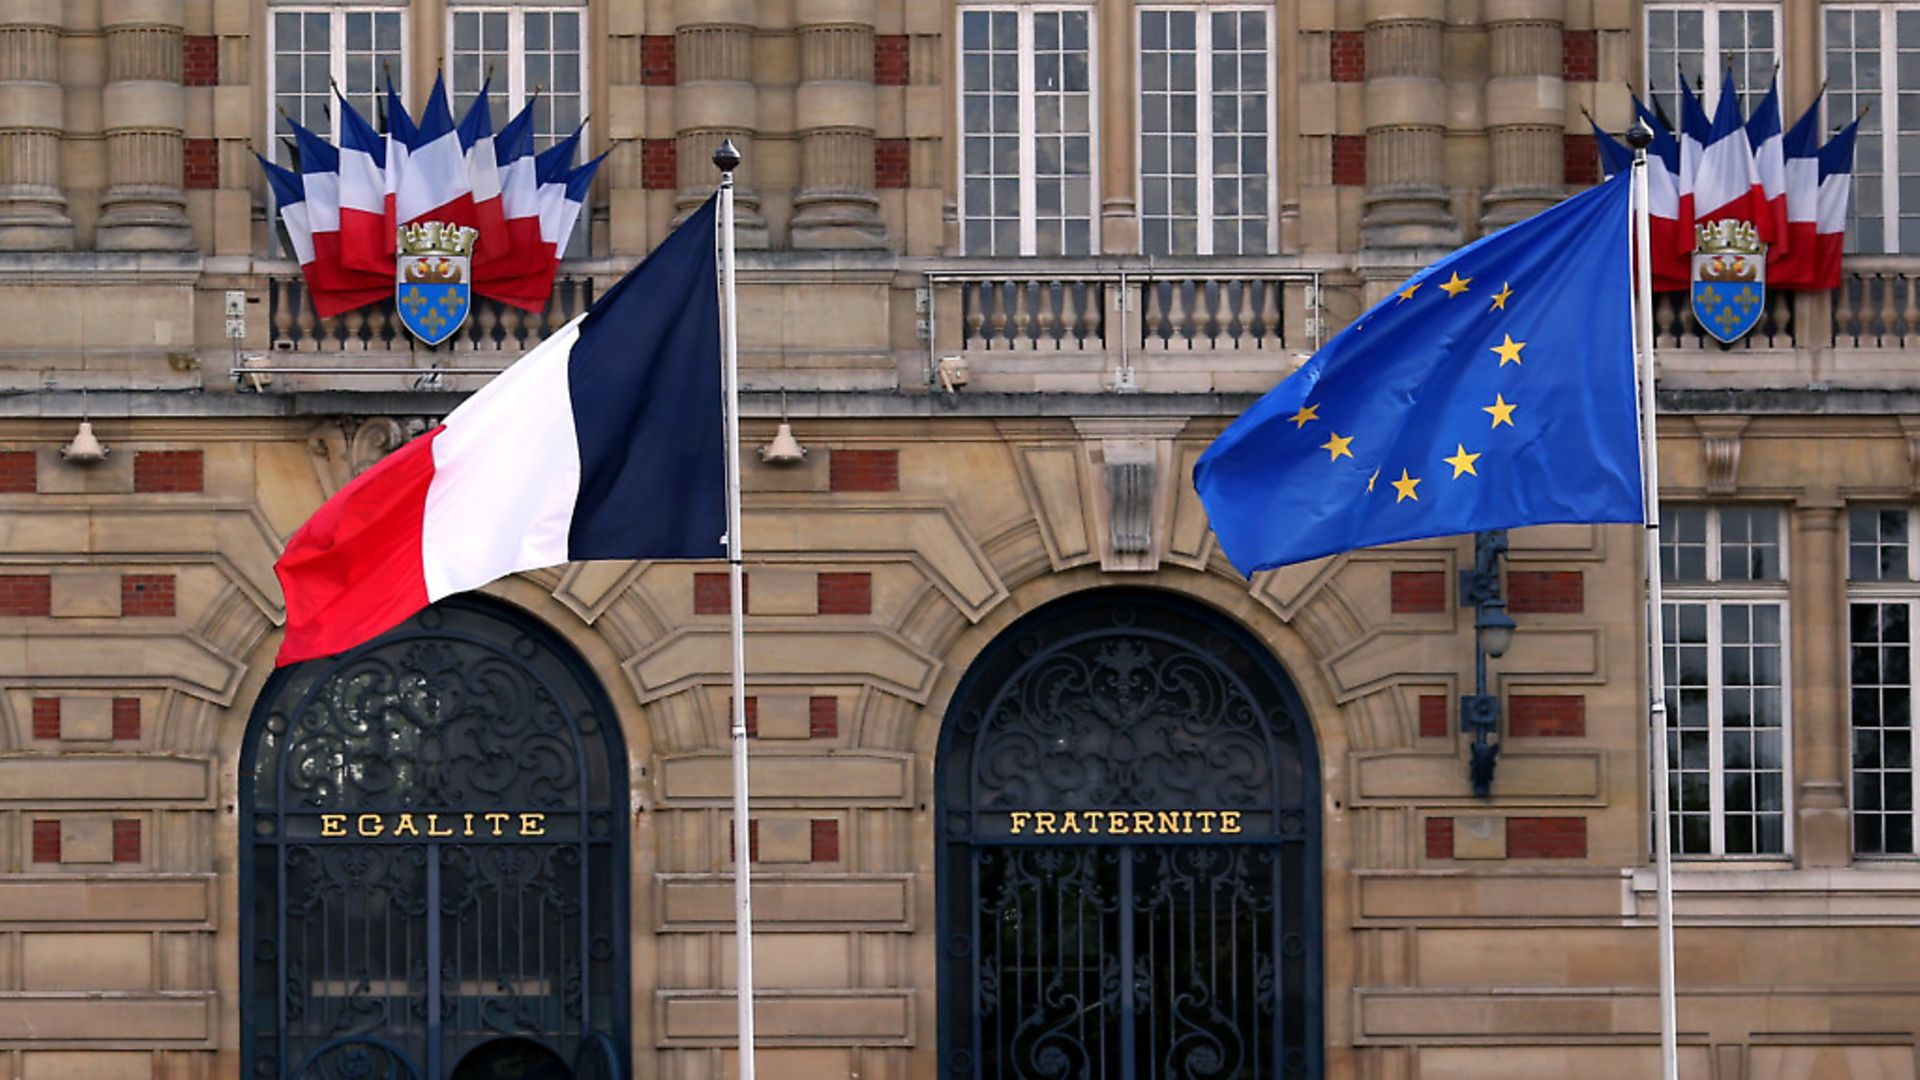 The French and EU flag. Photograph: Chris Radburn/PA Images. - Credit: PA Archive/PA Images